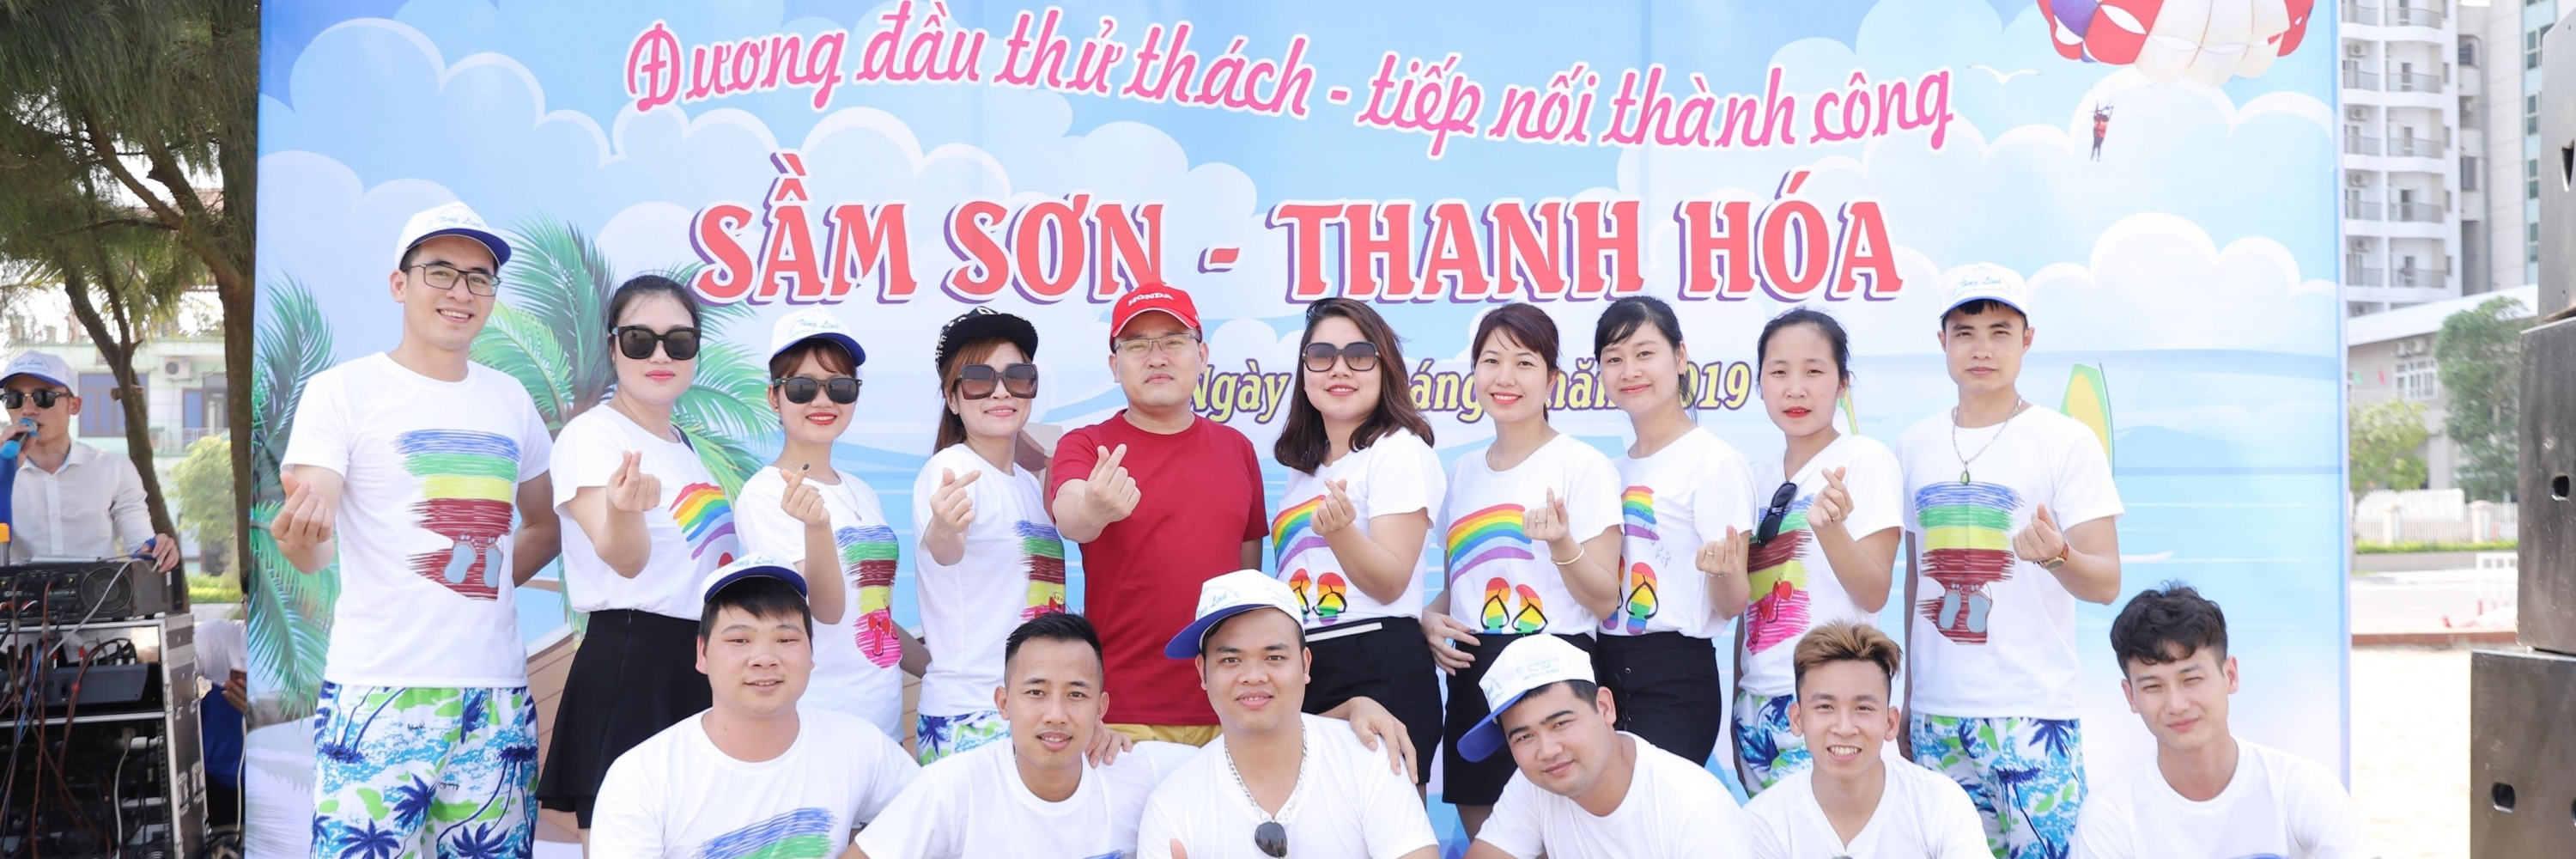 https://gody.vn/blog/vuongvp19986773/post/du-lich-sam-son-thanh-hoa-team-building-5173